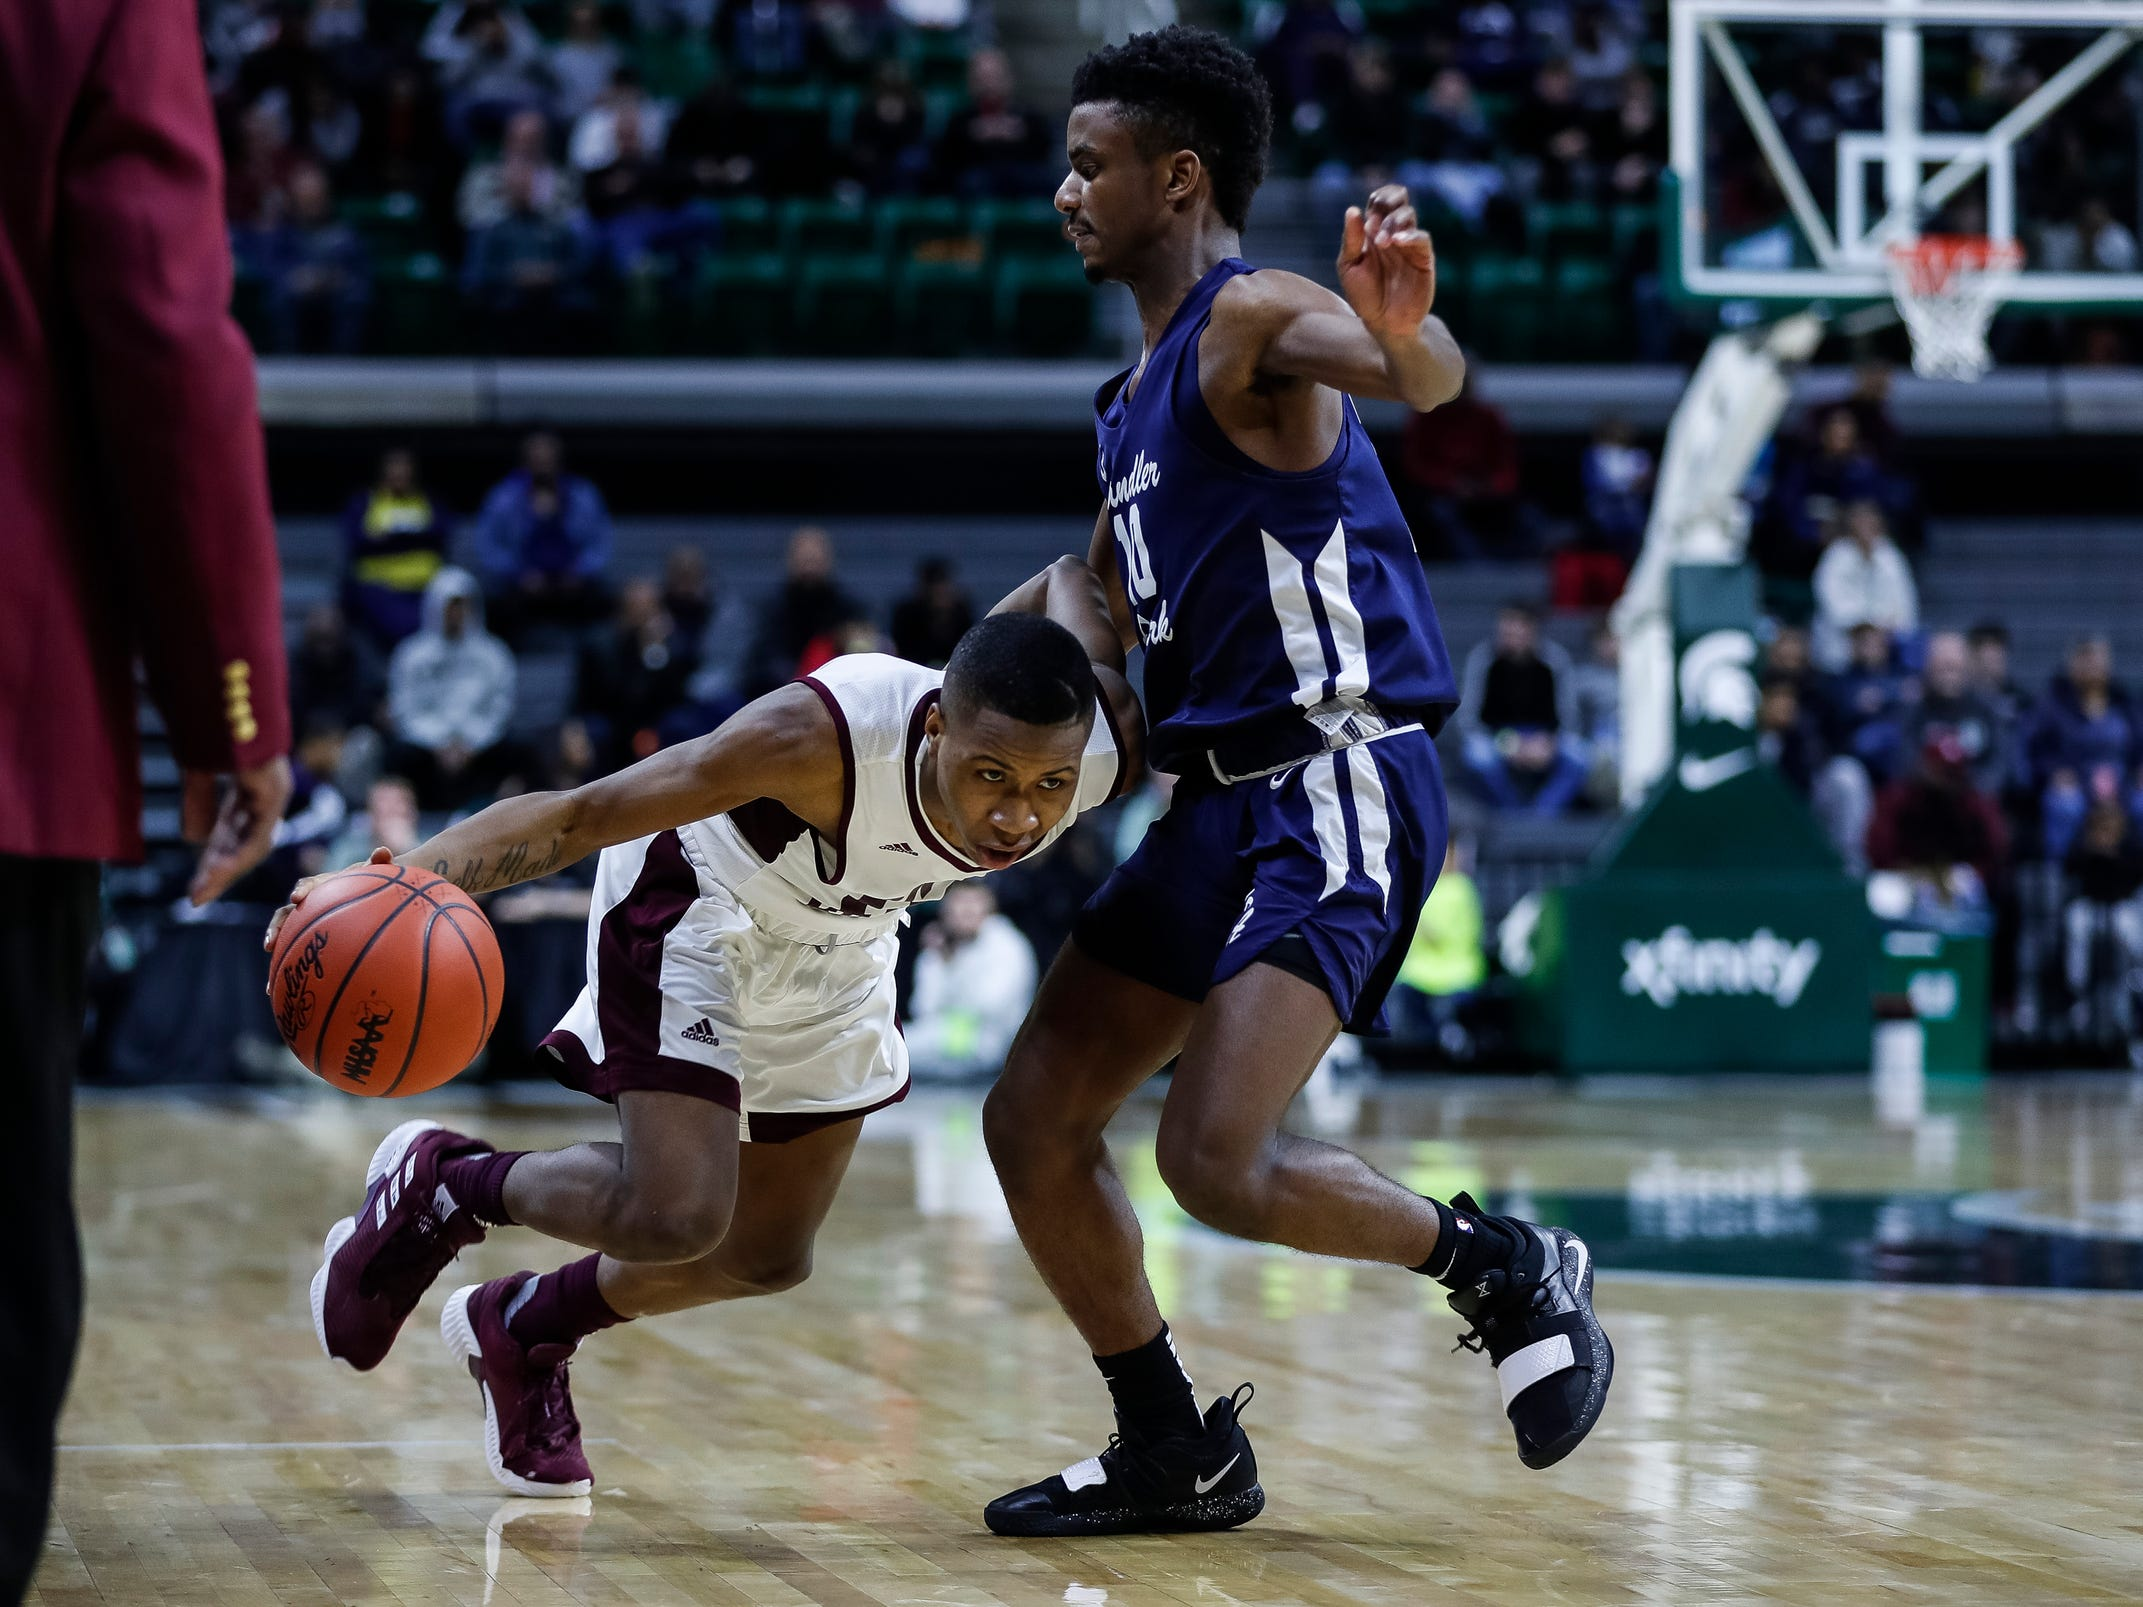 River Rouge's Bralin Toney (10) dribbles against Harper Woods Chandler Park's Josh Diggs (10) during the second half of MHSAA Division 2 semifinal at the Breslin Center in East Lansing, Friday, March 15, 2019.